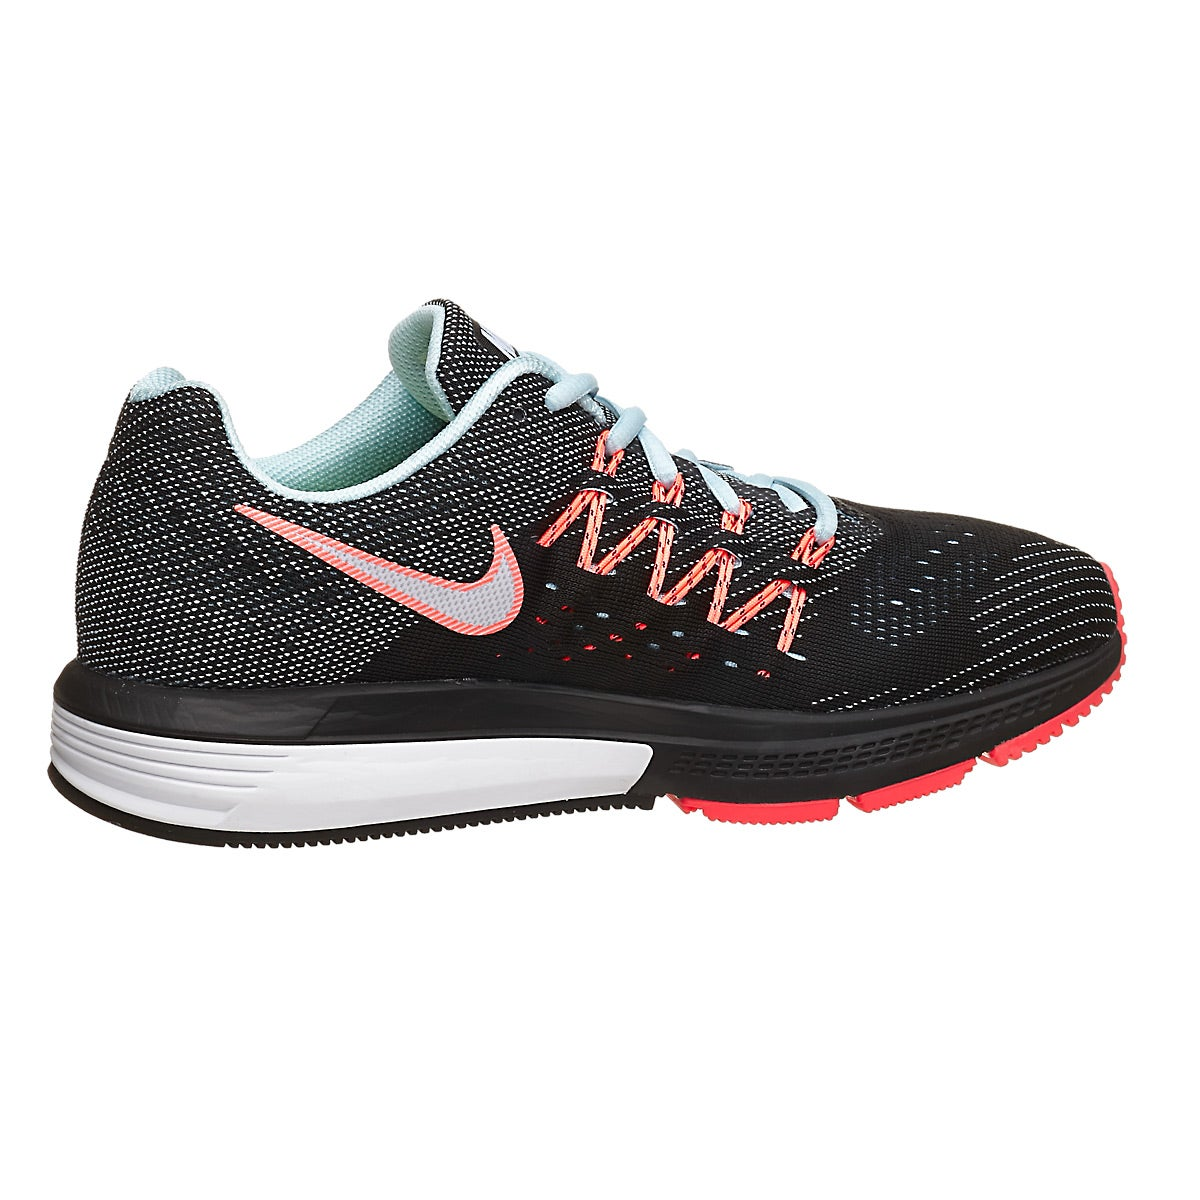 017d483fc7ce3 ... Nike Zoom Vomero 10 Women s Shoes Ice Black Lava 360° View